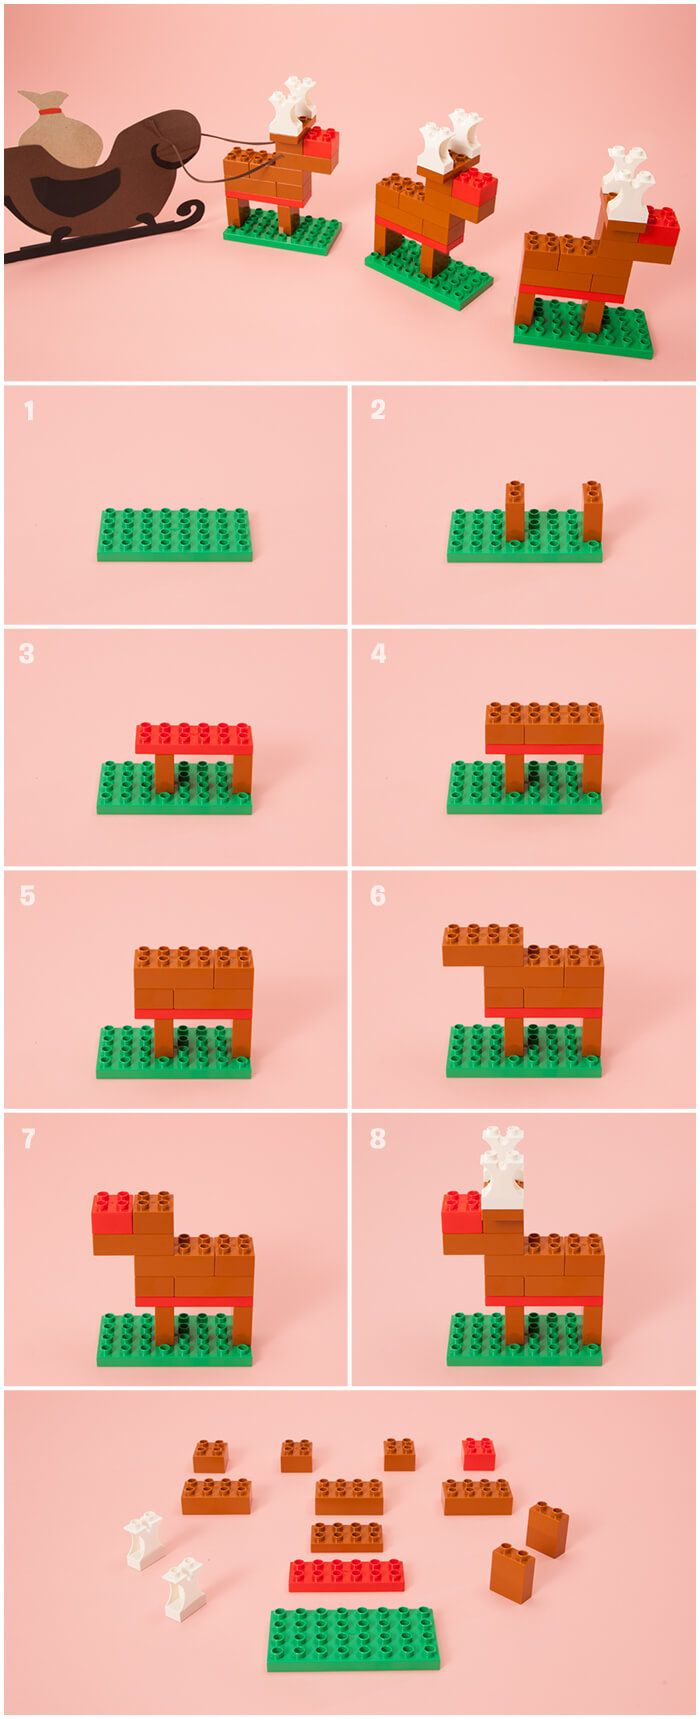 DIY Reindeer - stocking fillers and holiday decorations - Articles - Family LEGO.com